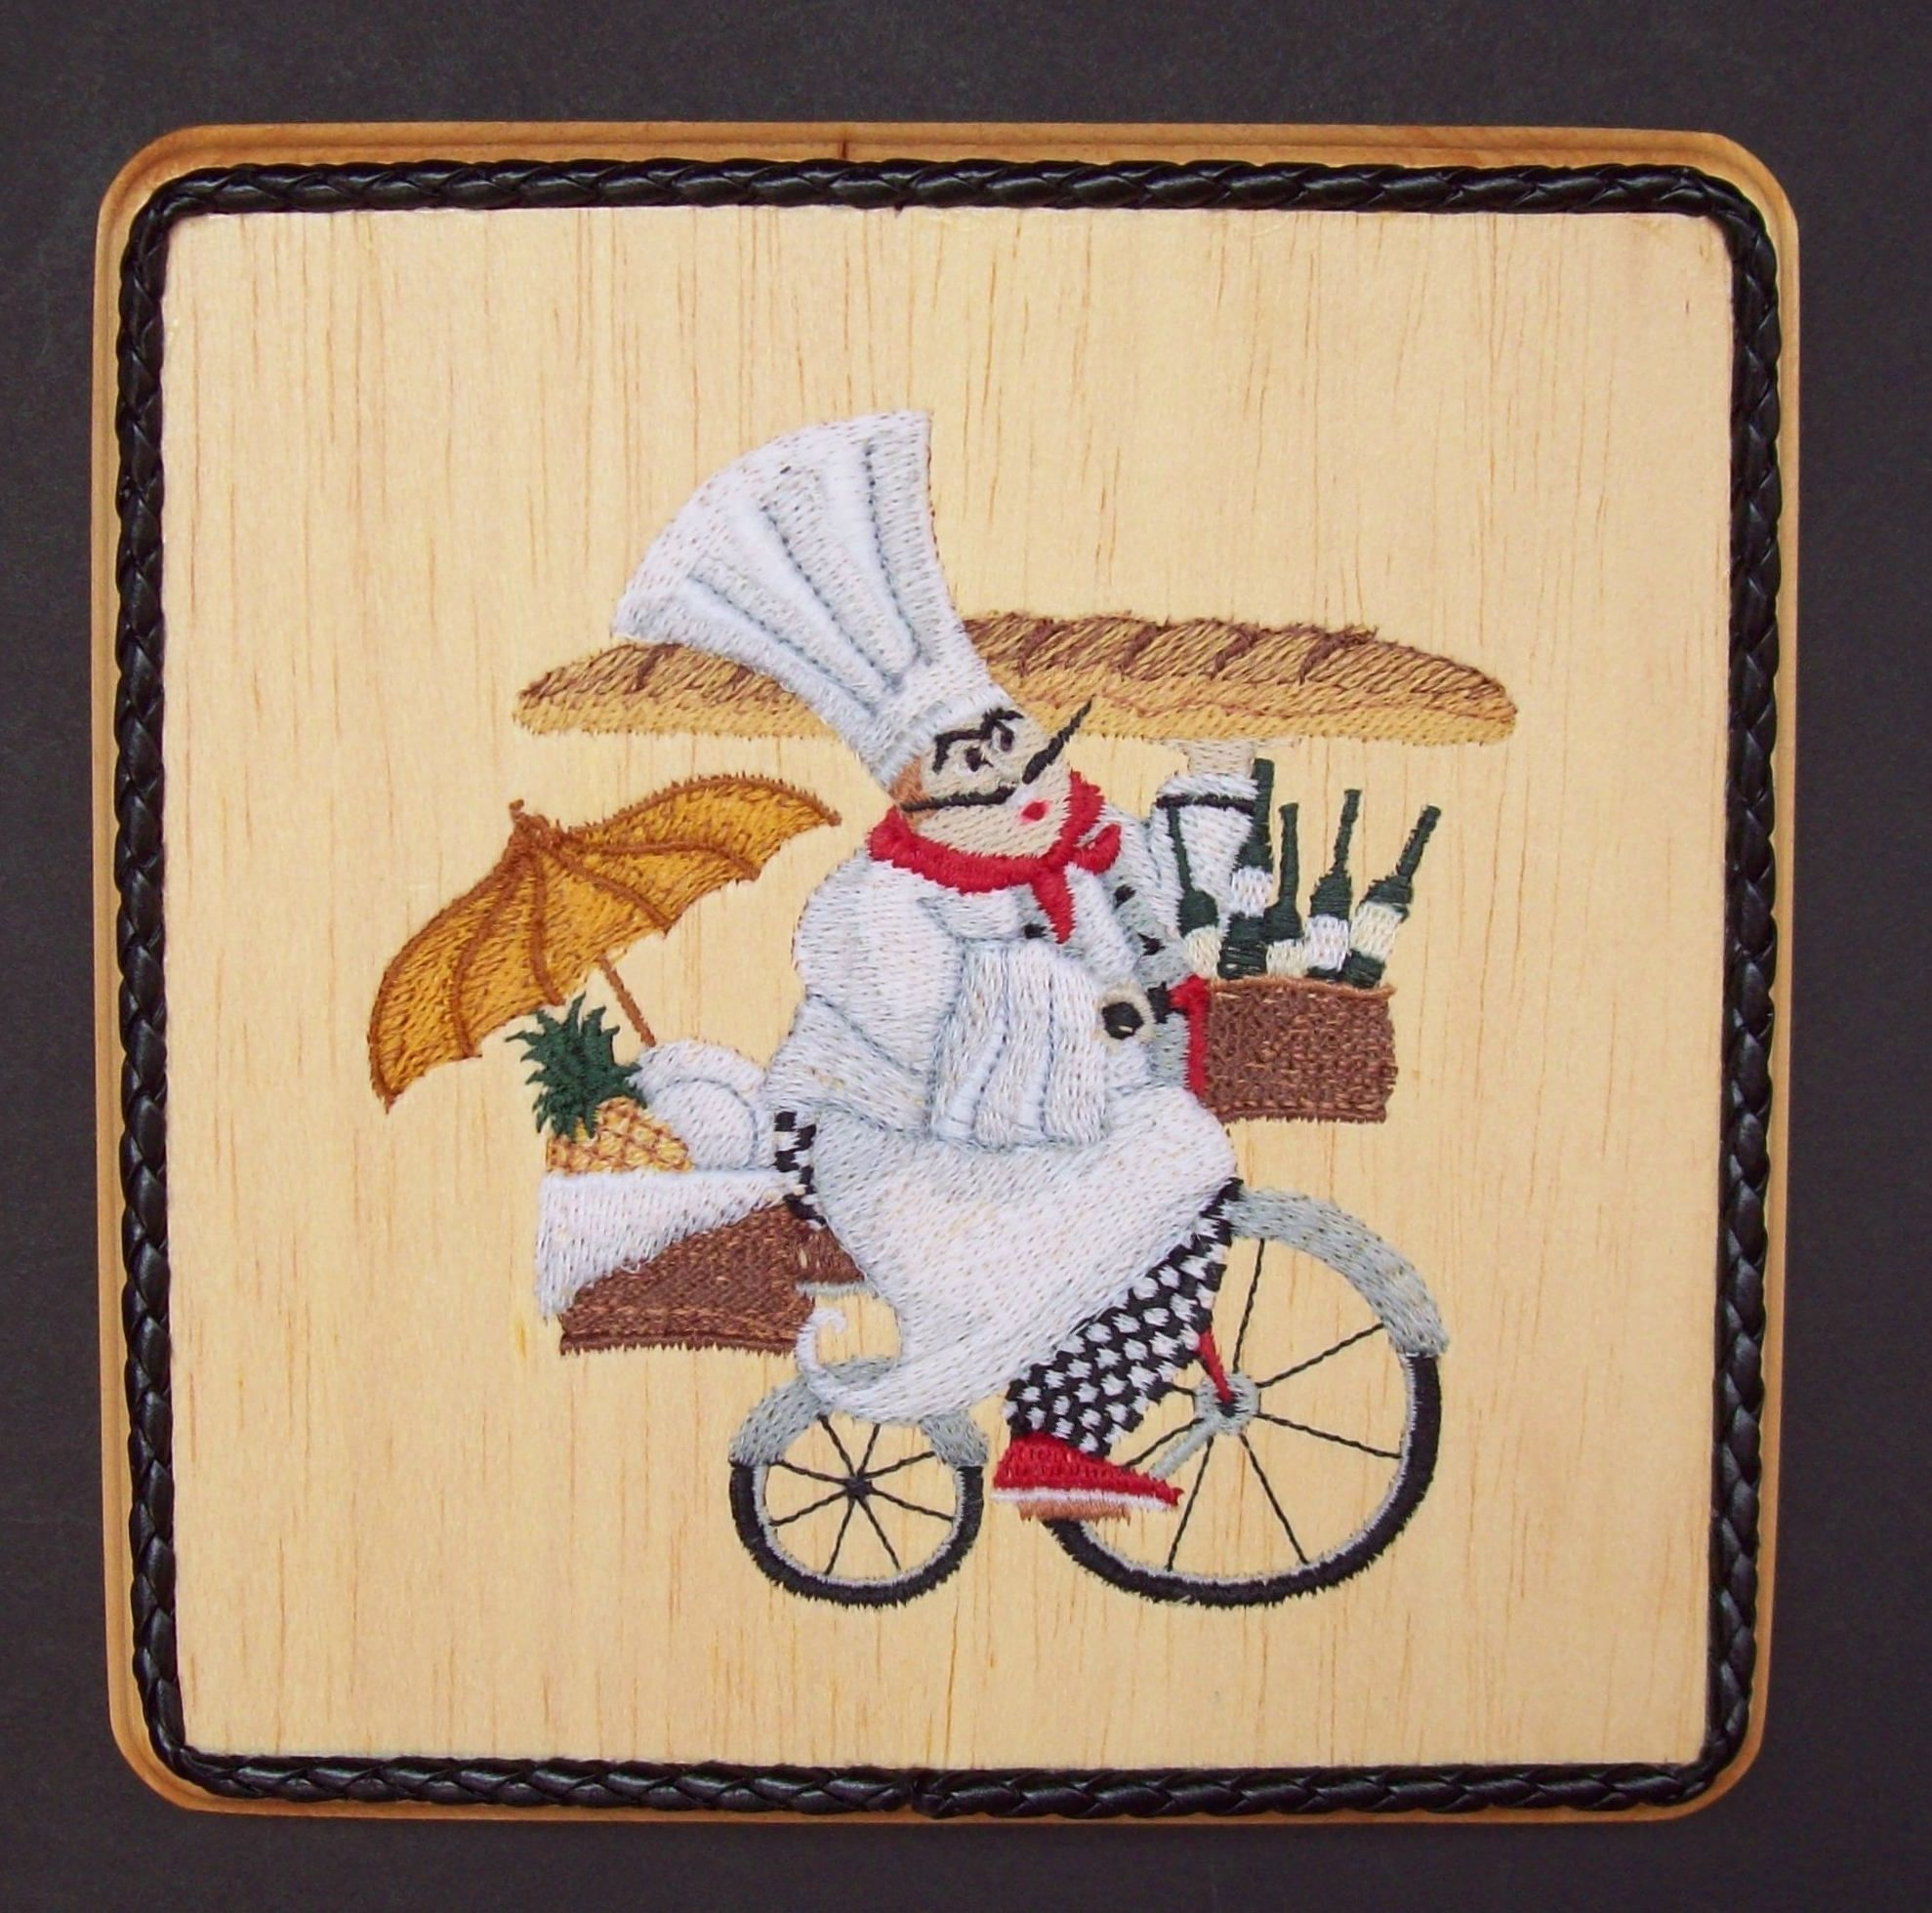 French chef embroidery wood art kitchen wall decor french country